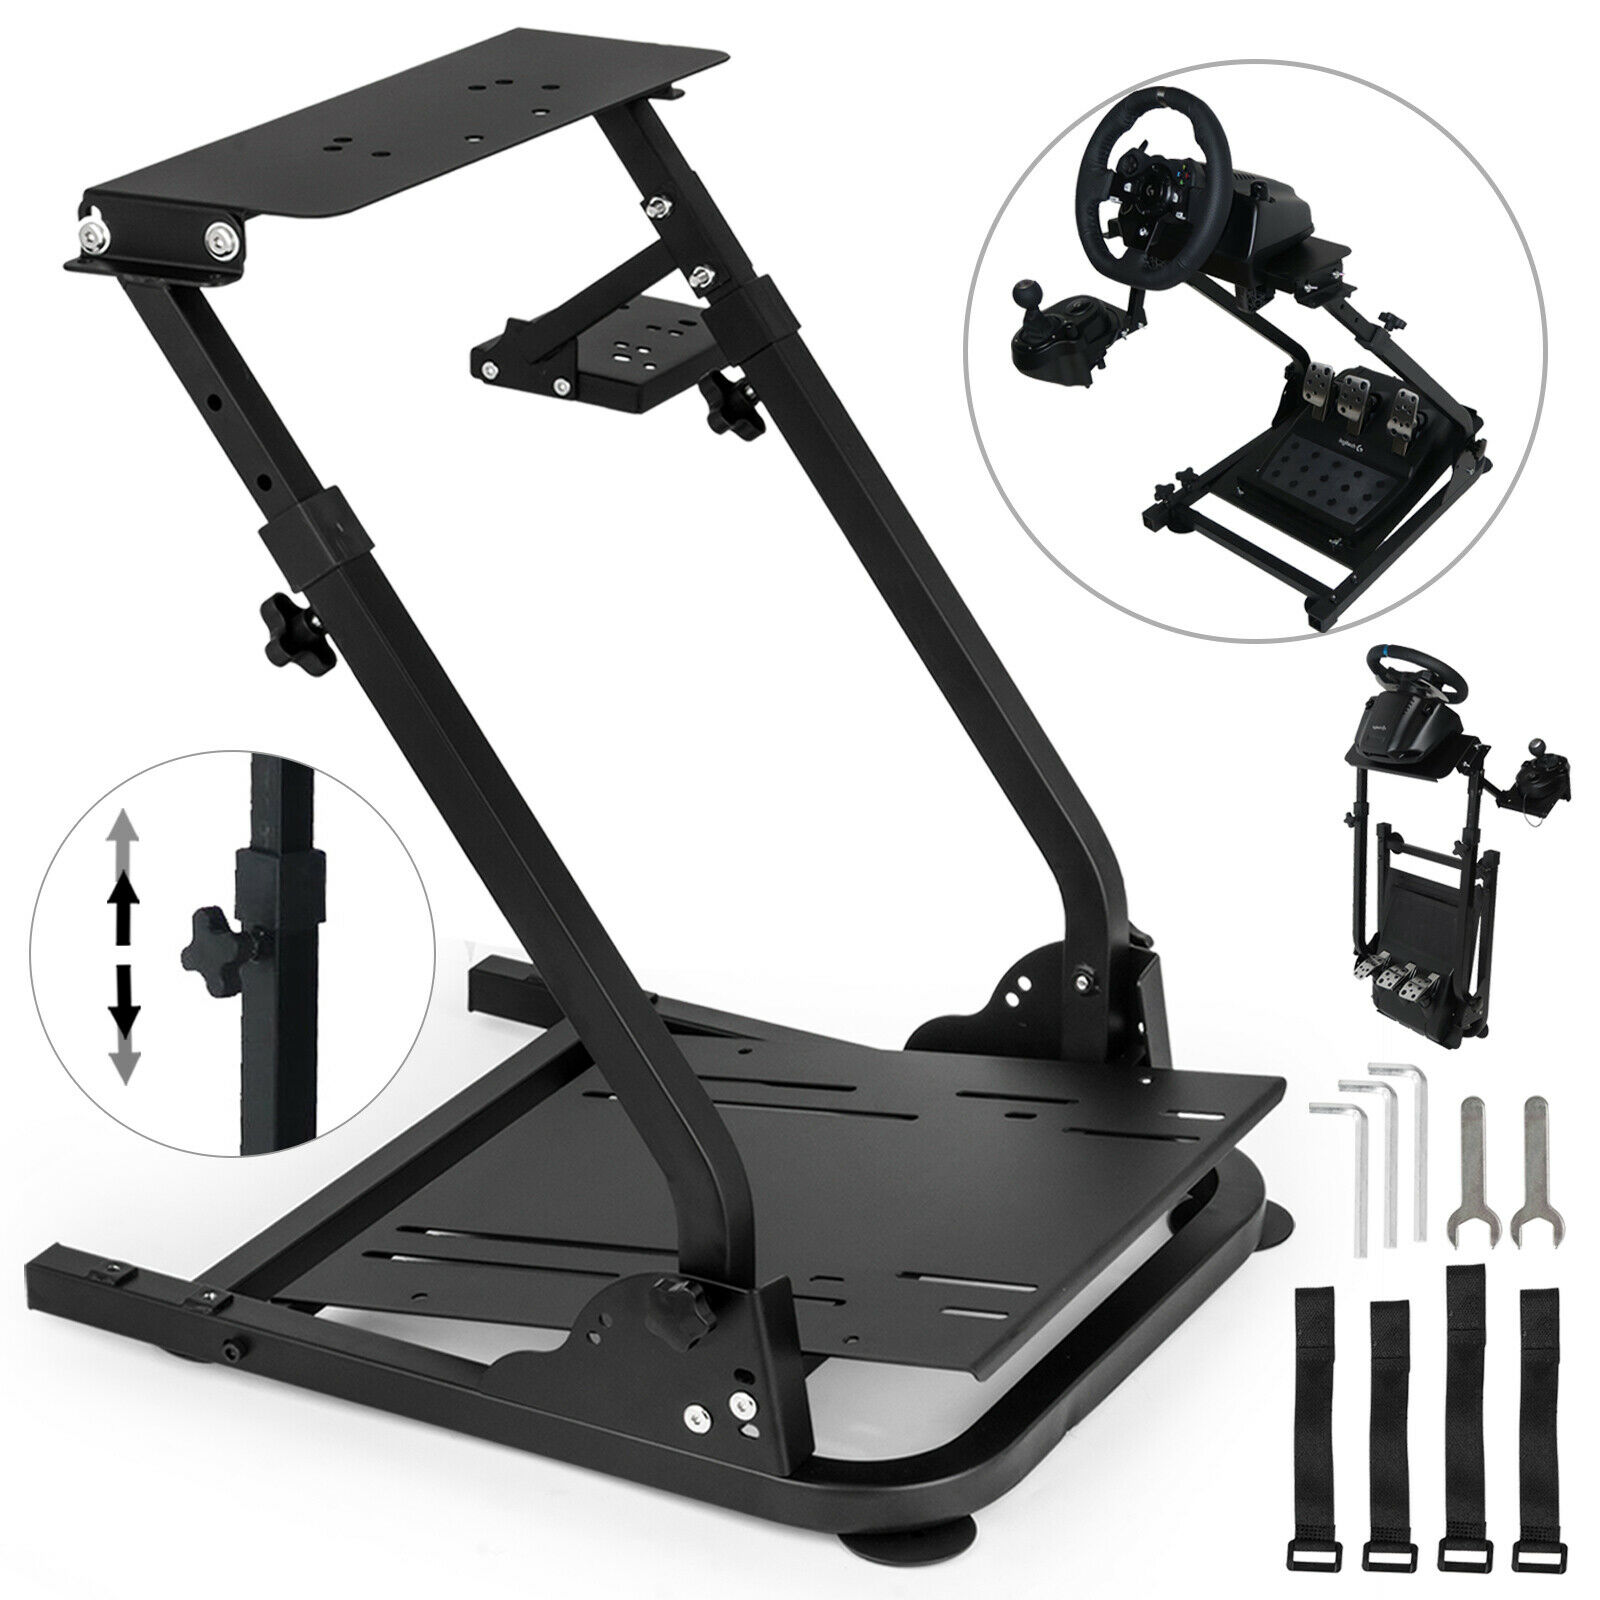 Vevor Racing Simulator Steering Wheel Stand For G920 Gear Shifter